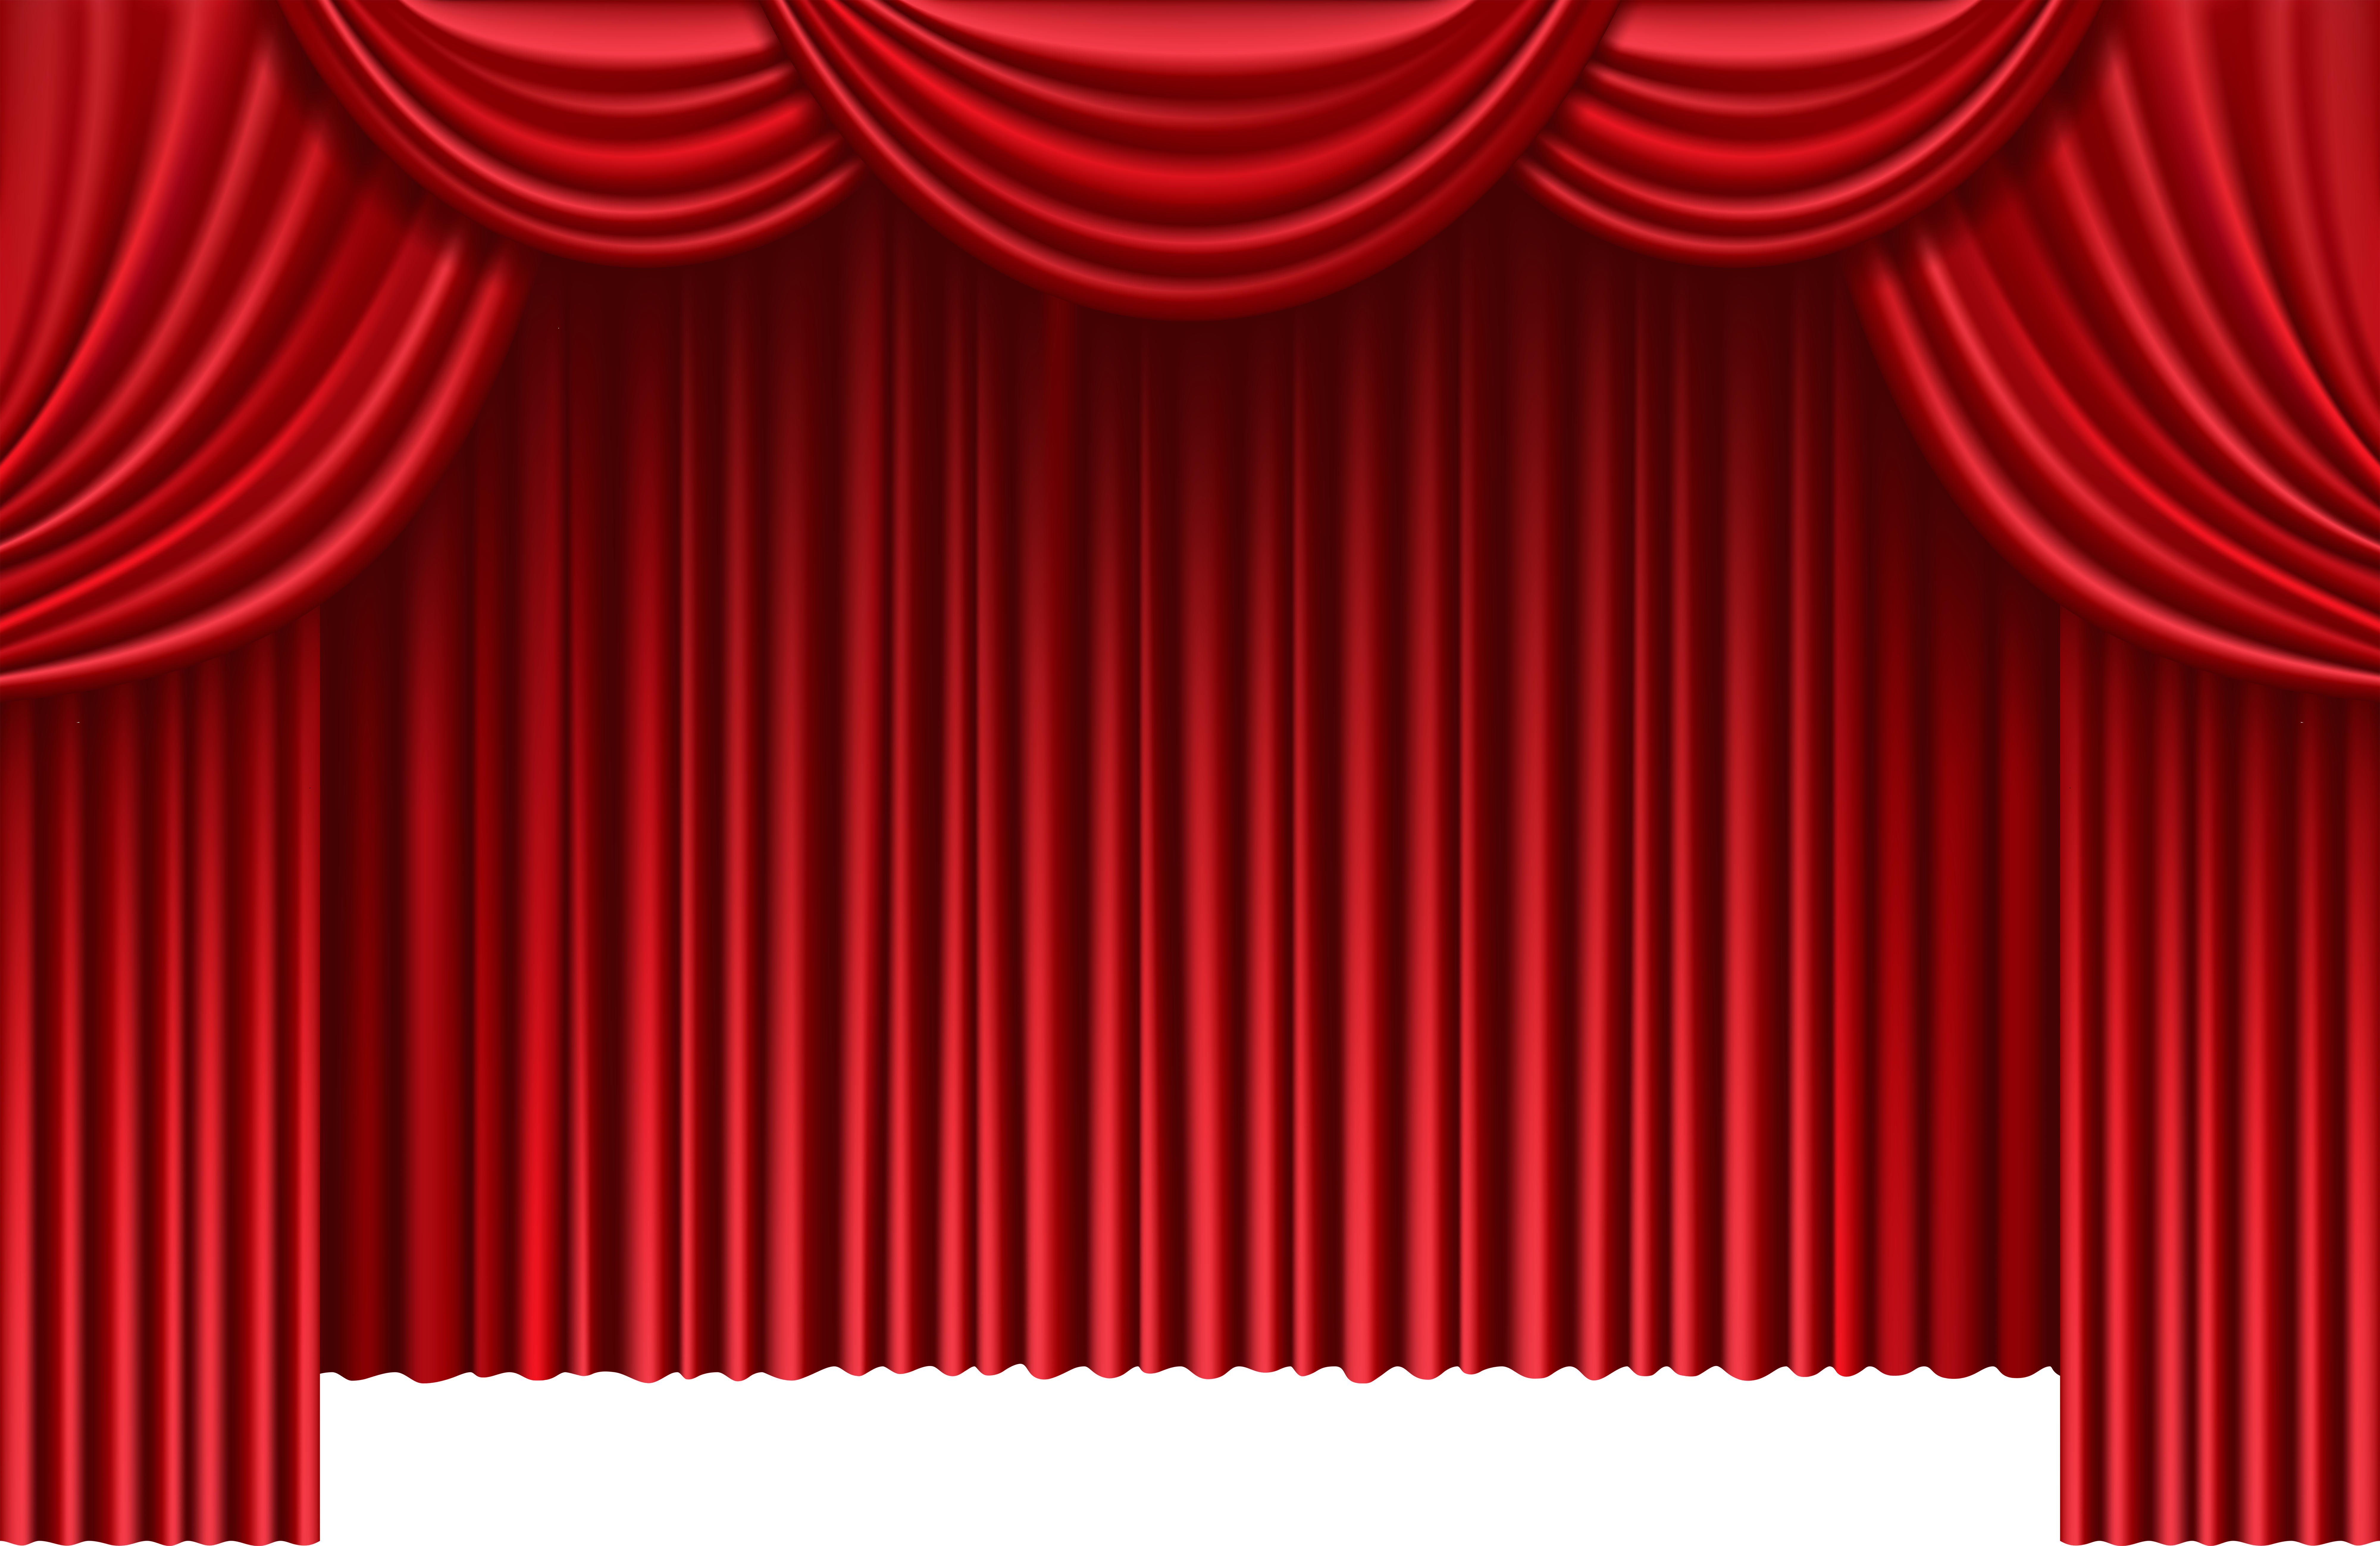 Red Theater Curtains PNG Clip Art.